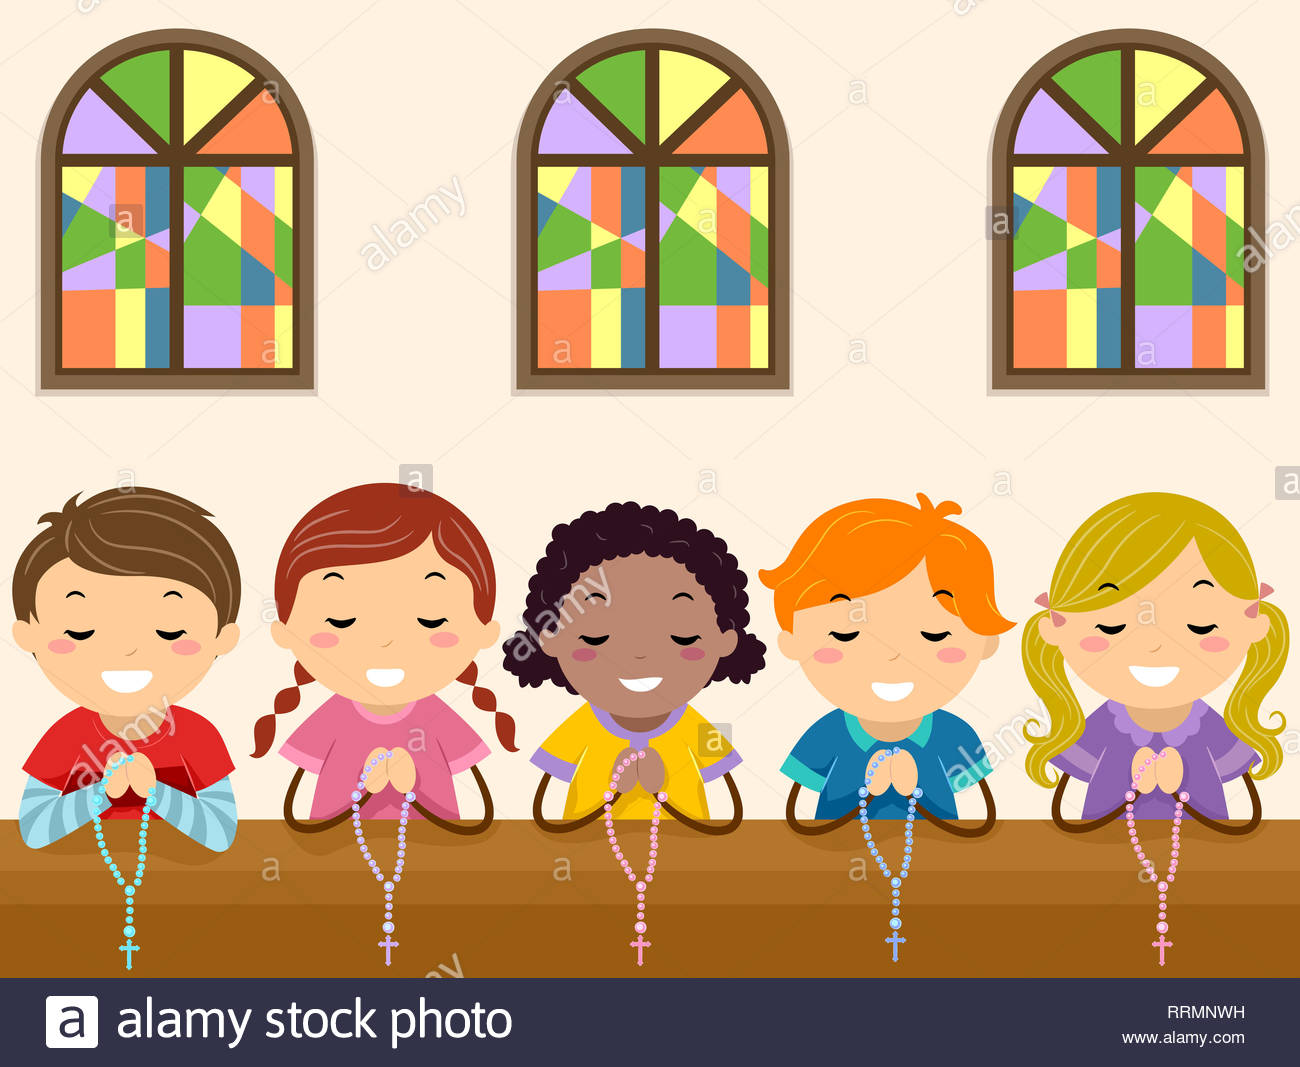 Illustration of Stickman Kids Kneeling and Praying the Rosary in.